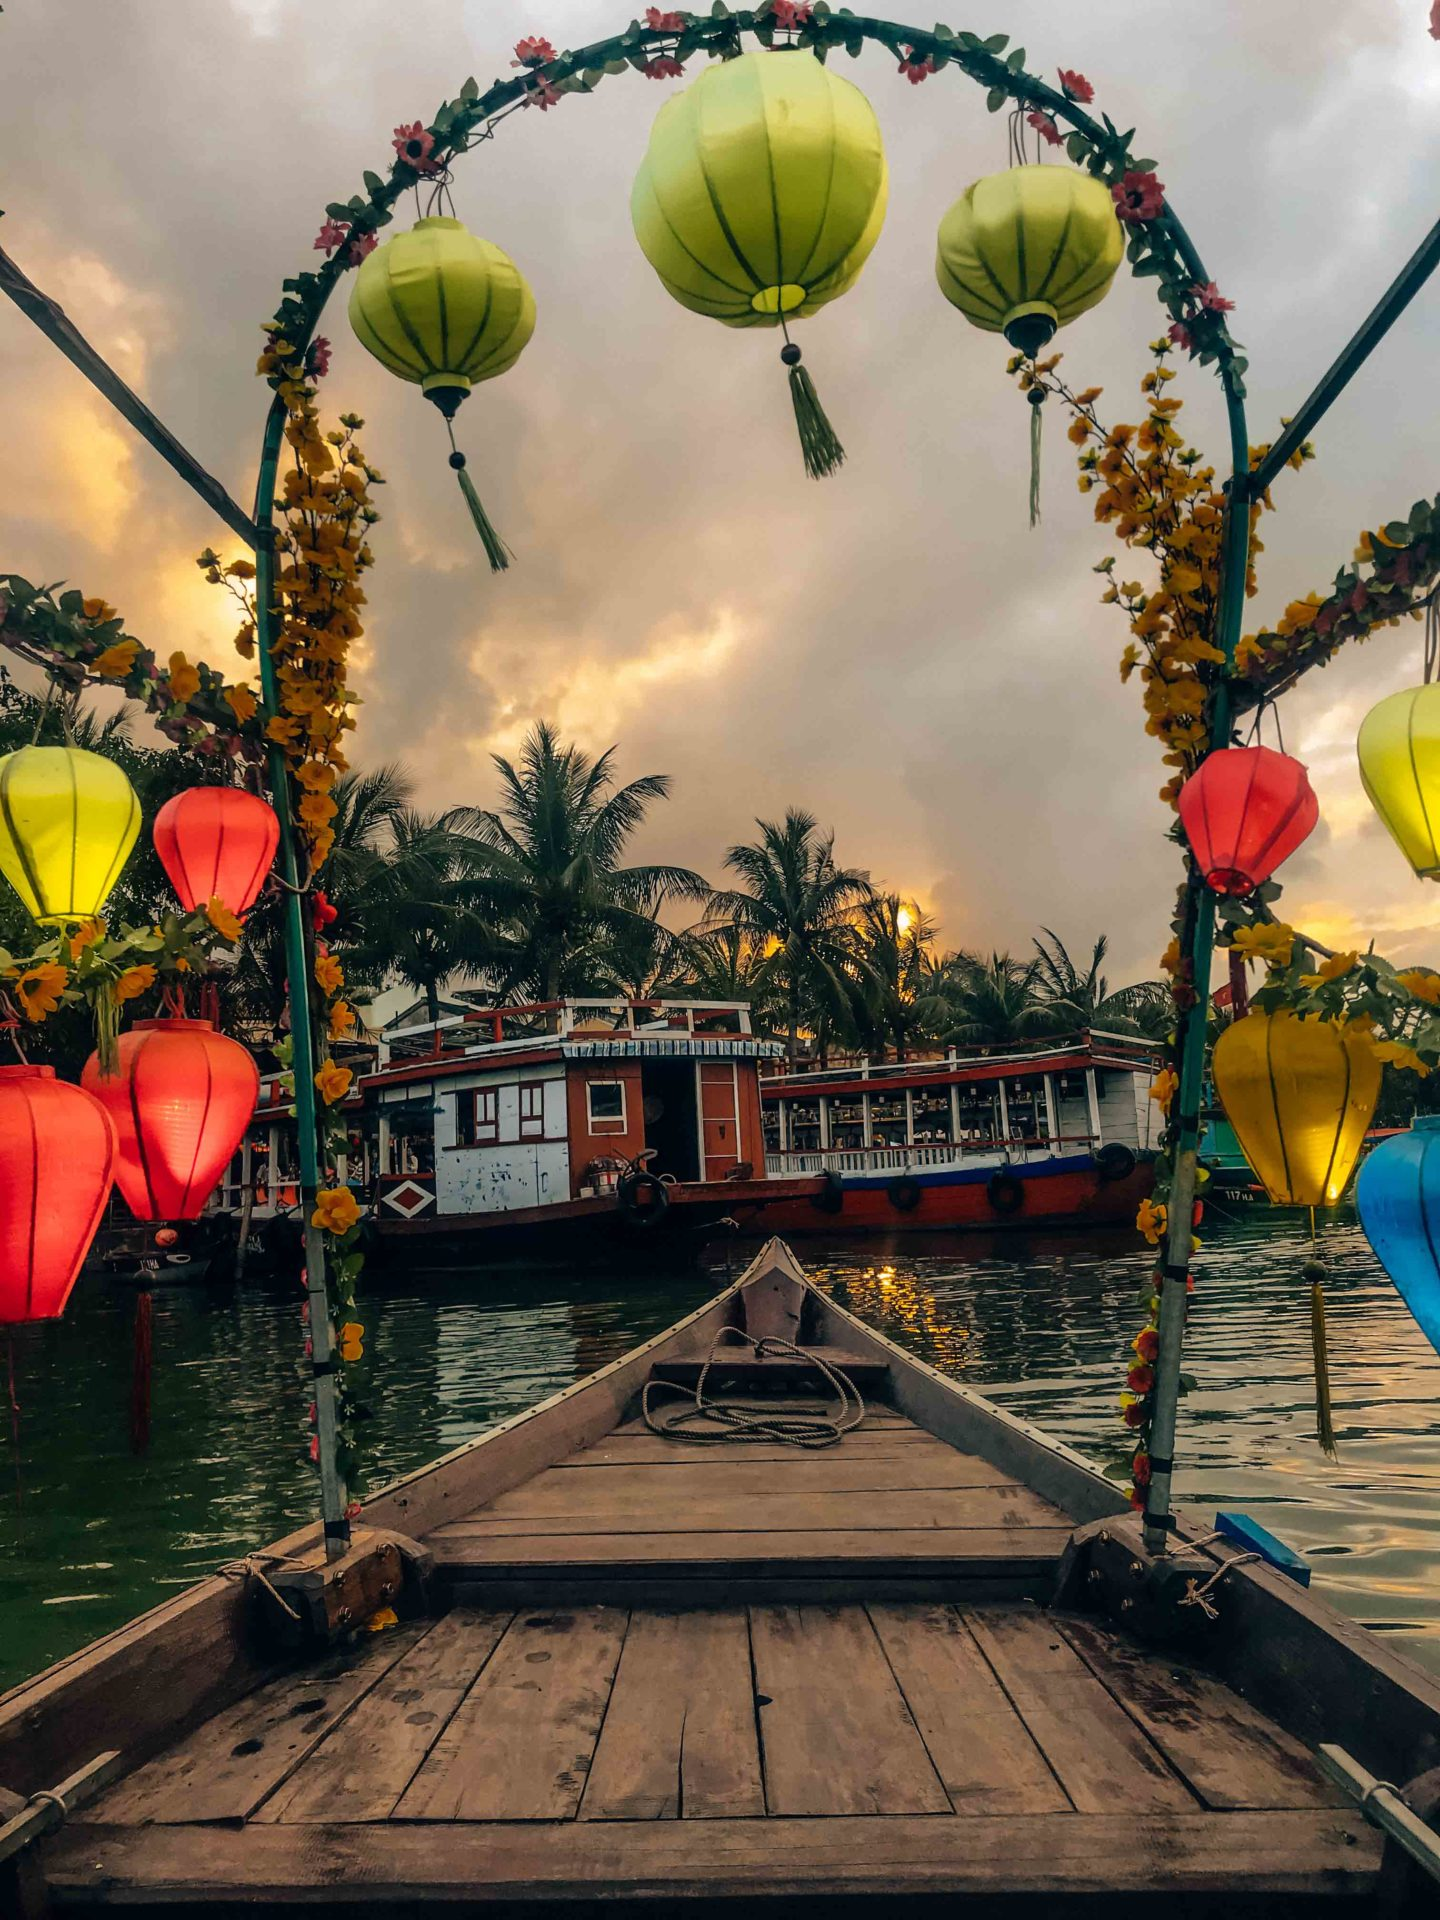 Lantern boat tour during sunset in Hoi An, Vietnam